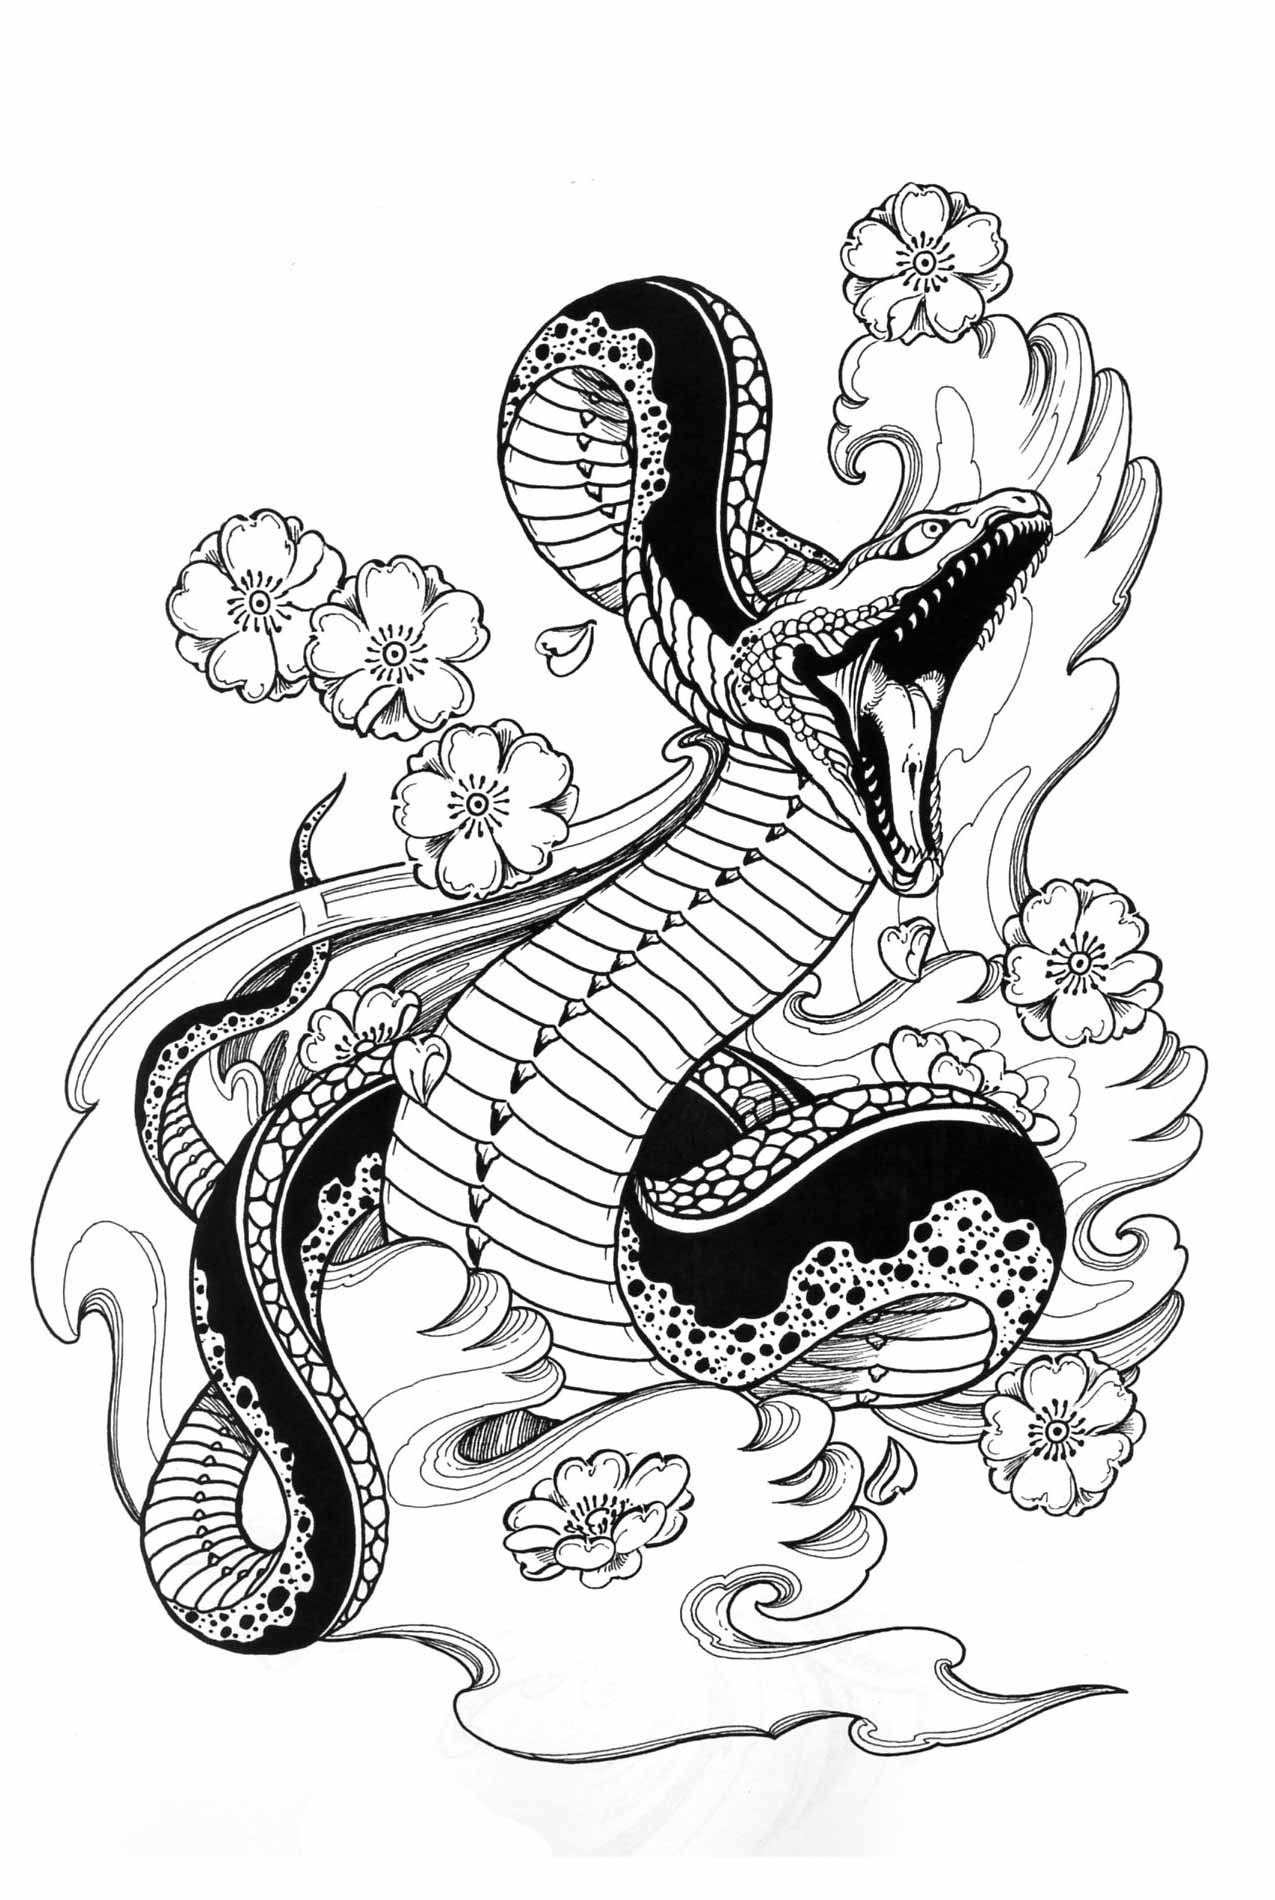 Snakes, Hawks &Tigers by Horimouja Snake tattoo design